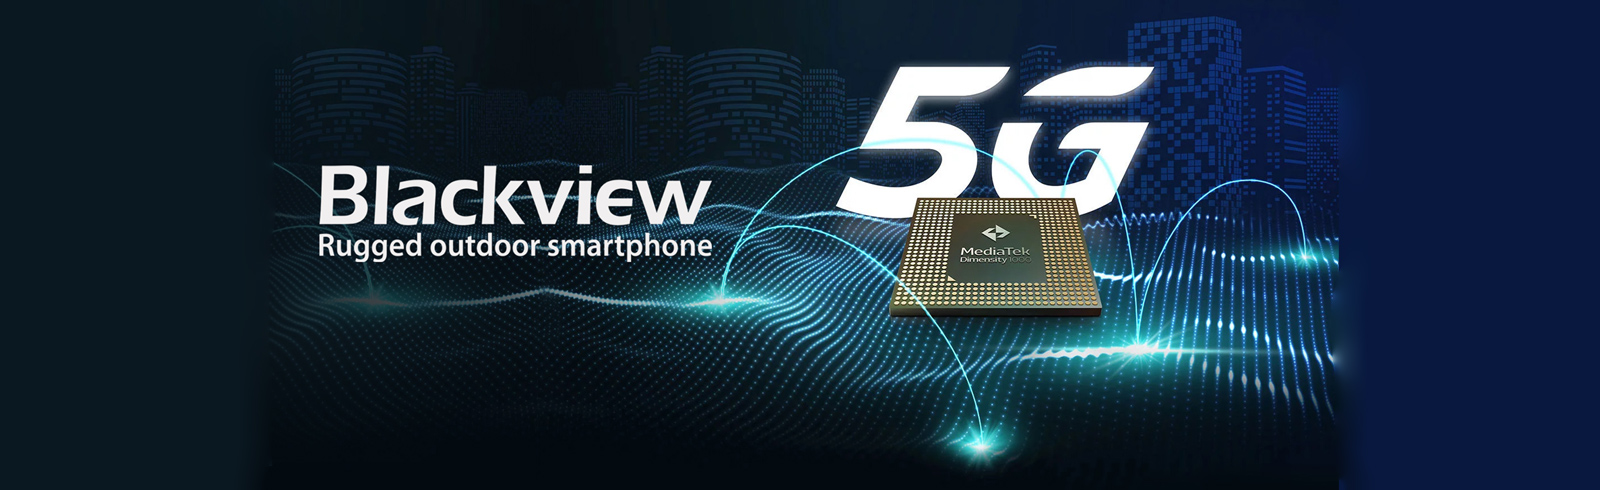 Blackview will launch the first 5G rugged smartphone with MediaTek's Dimensity 1000 chipset